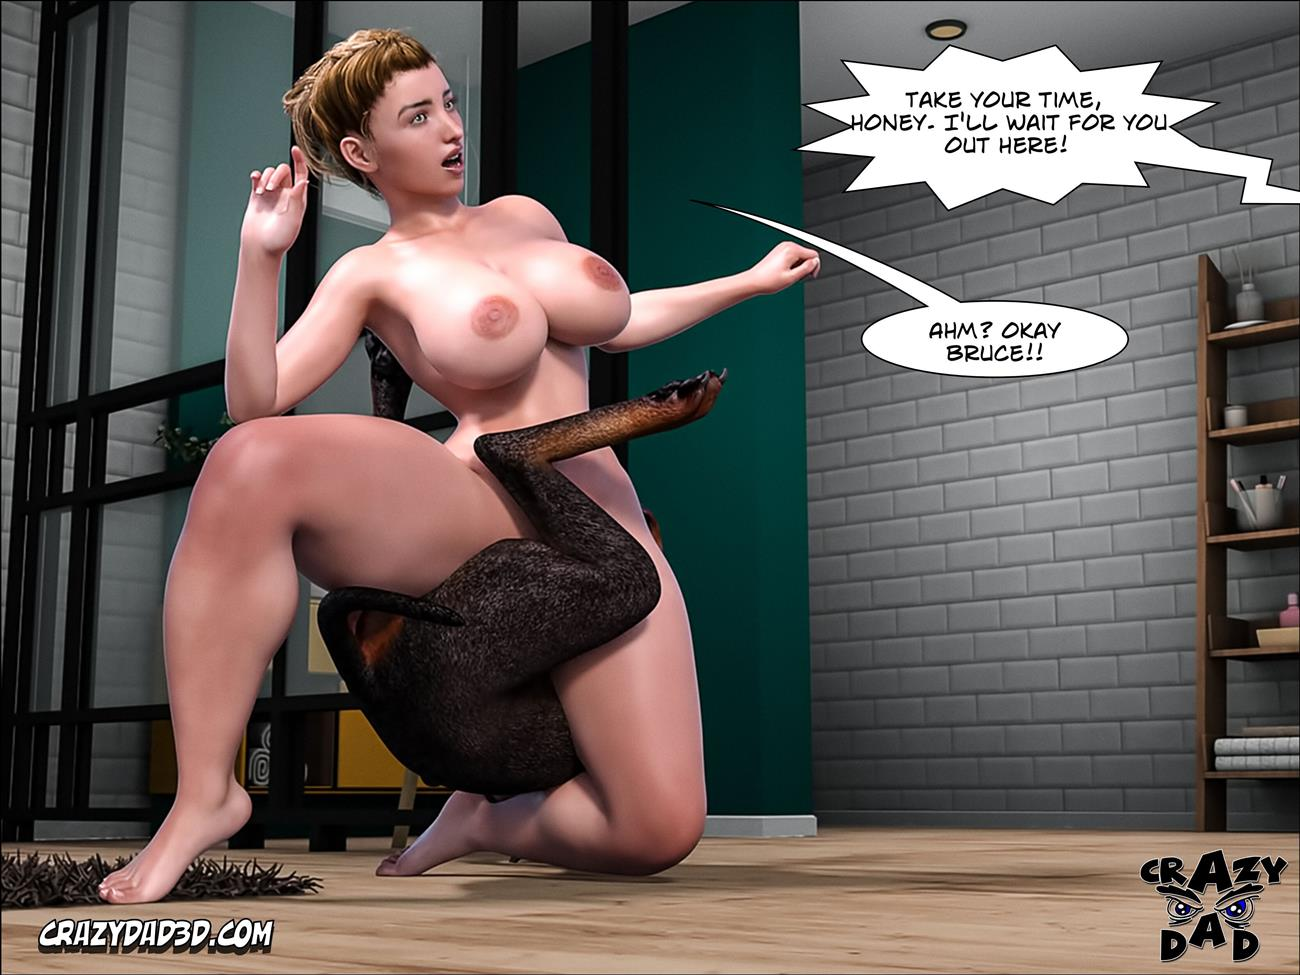 Father-in-Law at Home 12 [Crazy Dad 3D] - Foto 79